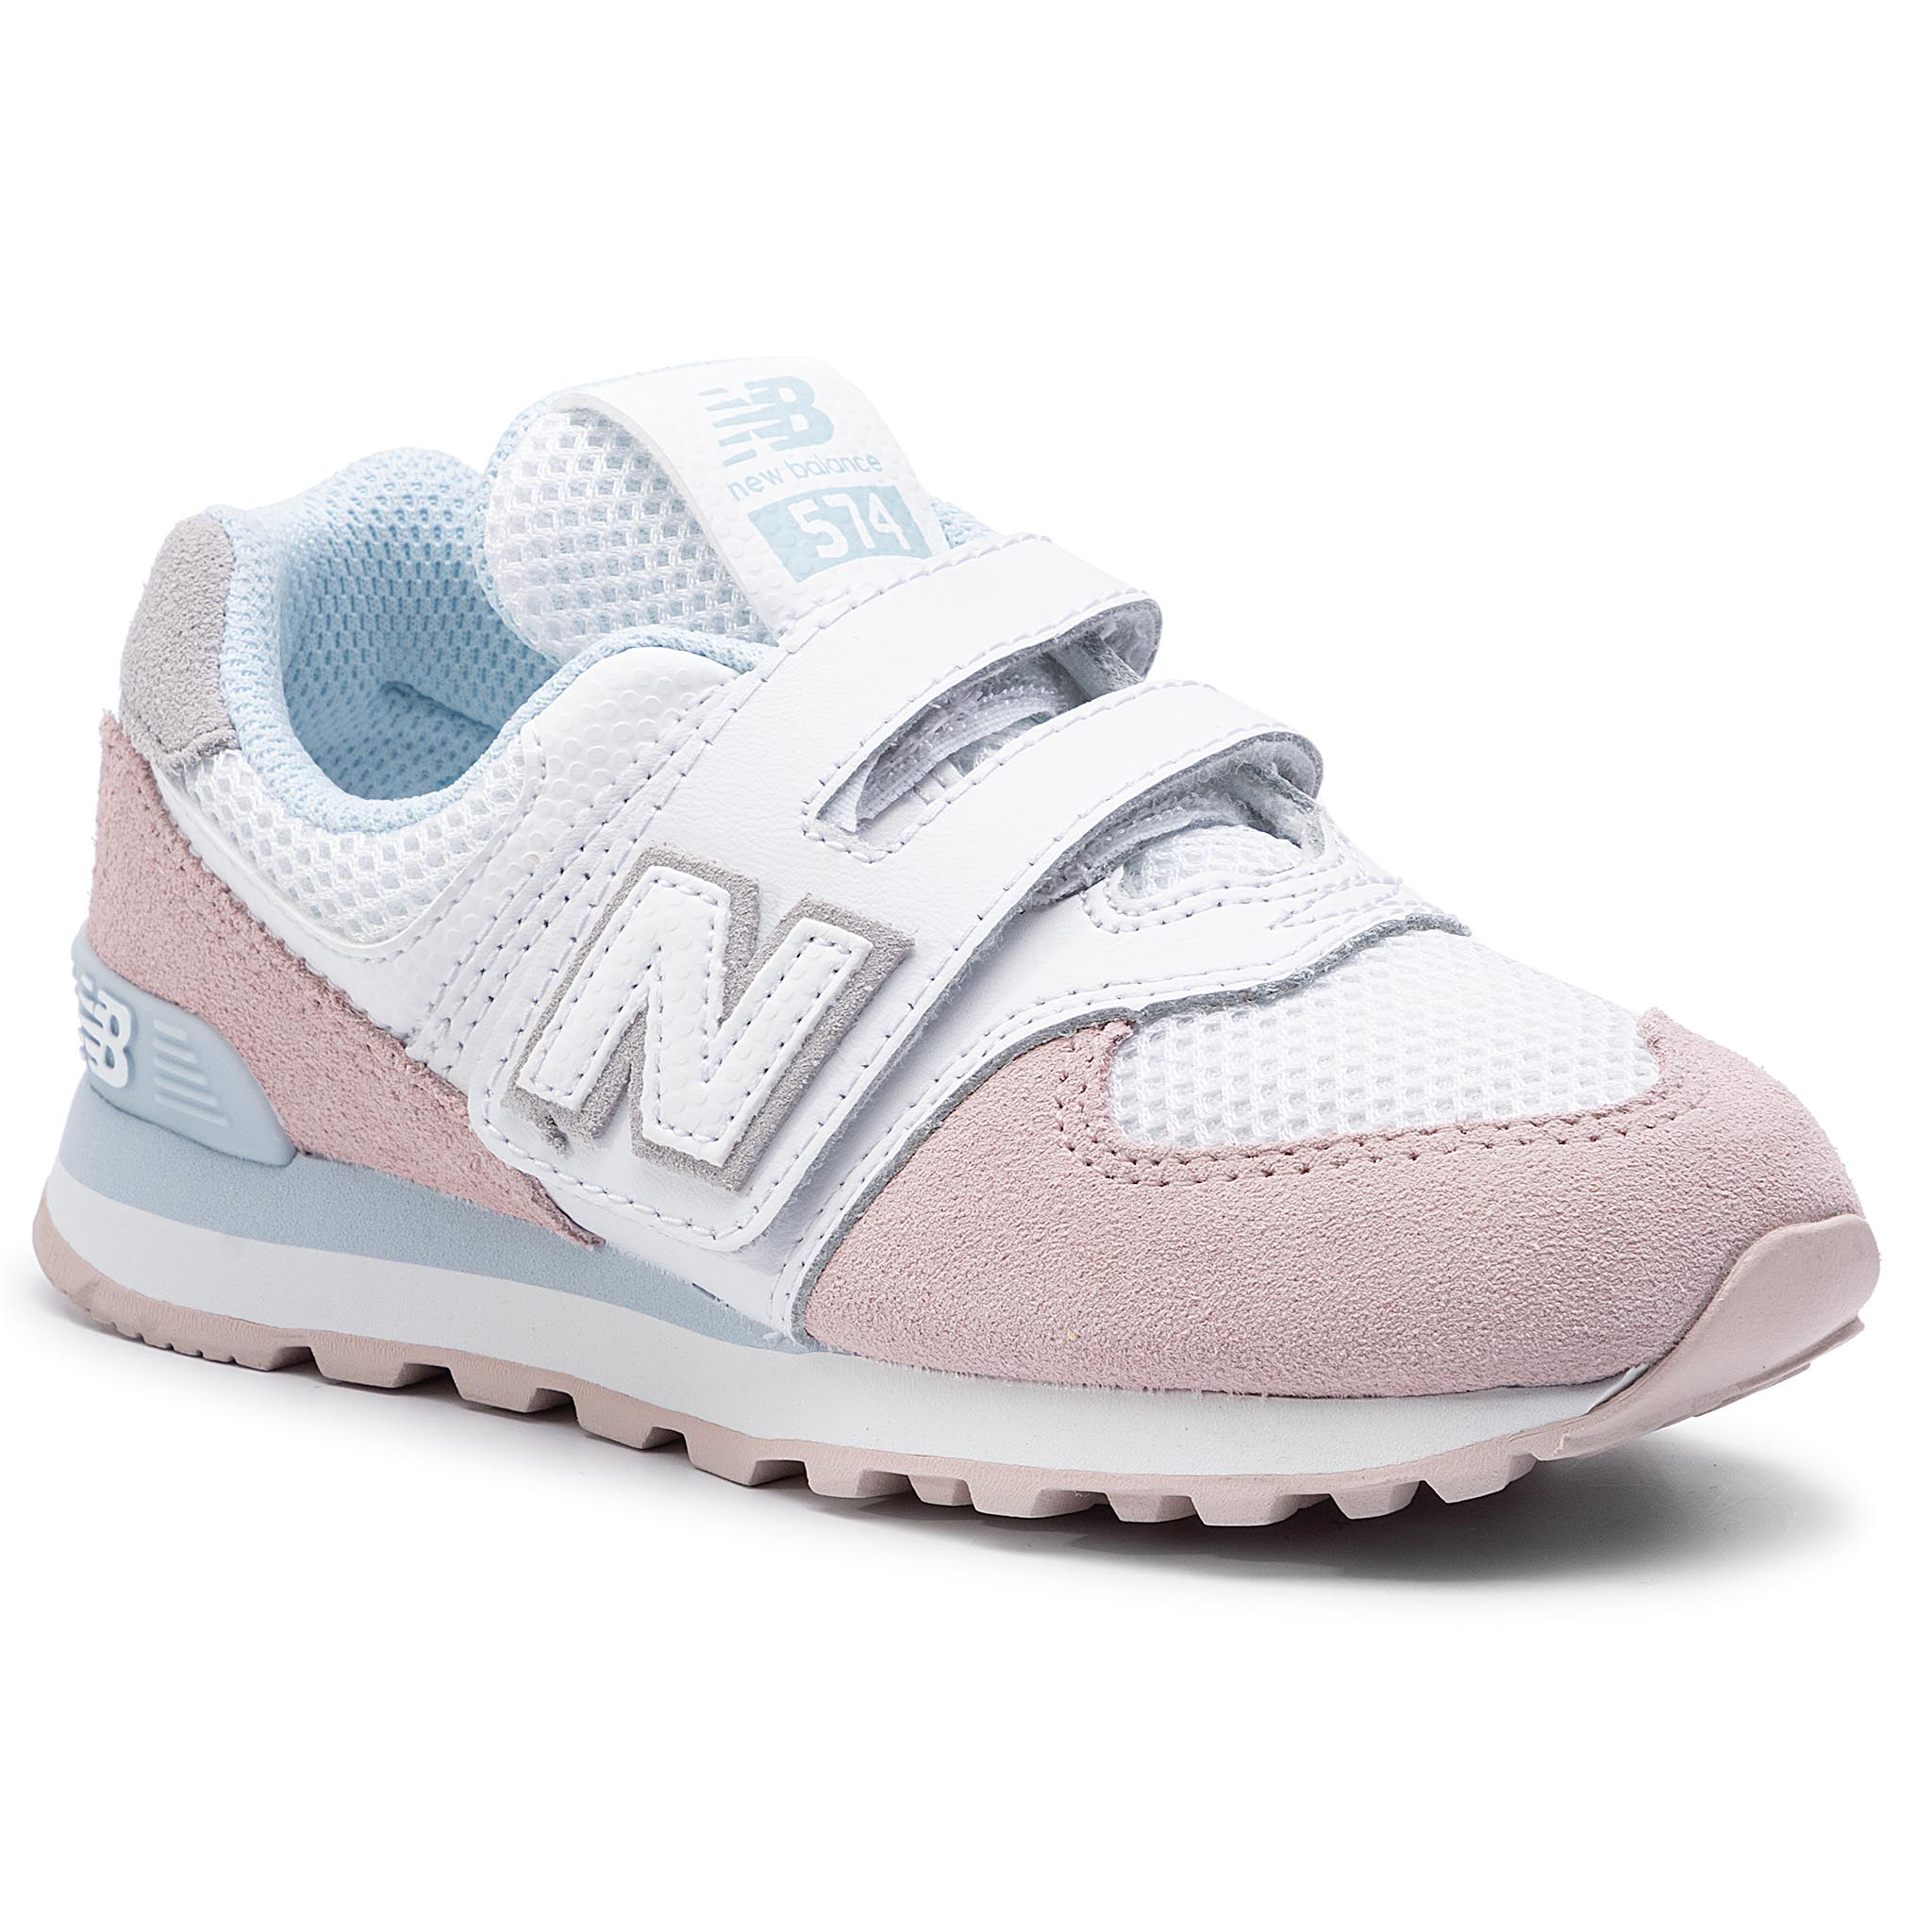 775e20ddb58d4 Sneakers NEW BALANCE - YV574UJB Pink - Velcro - Low shoes - Girl ...